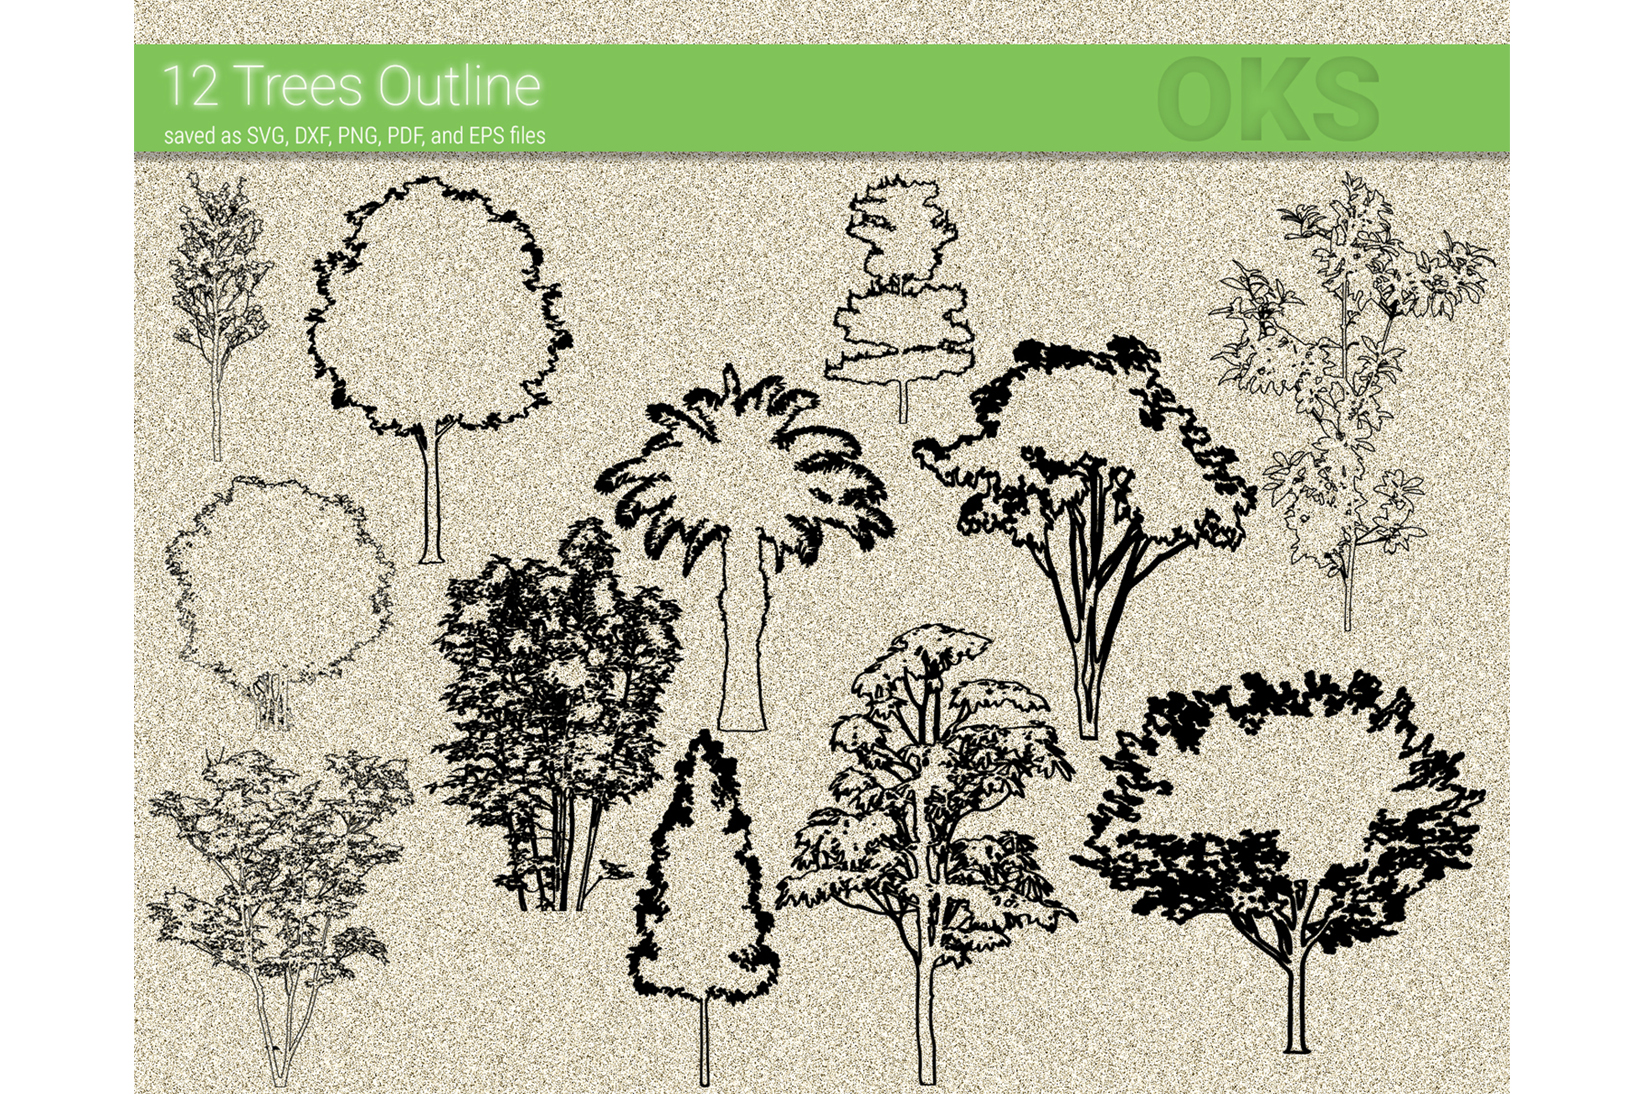 Download Free Trees Outline Vector Graphic By Crafteroks Creative Fabrica for Cricut Explore, Silhouette and other cutting machines.